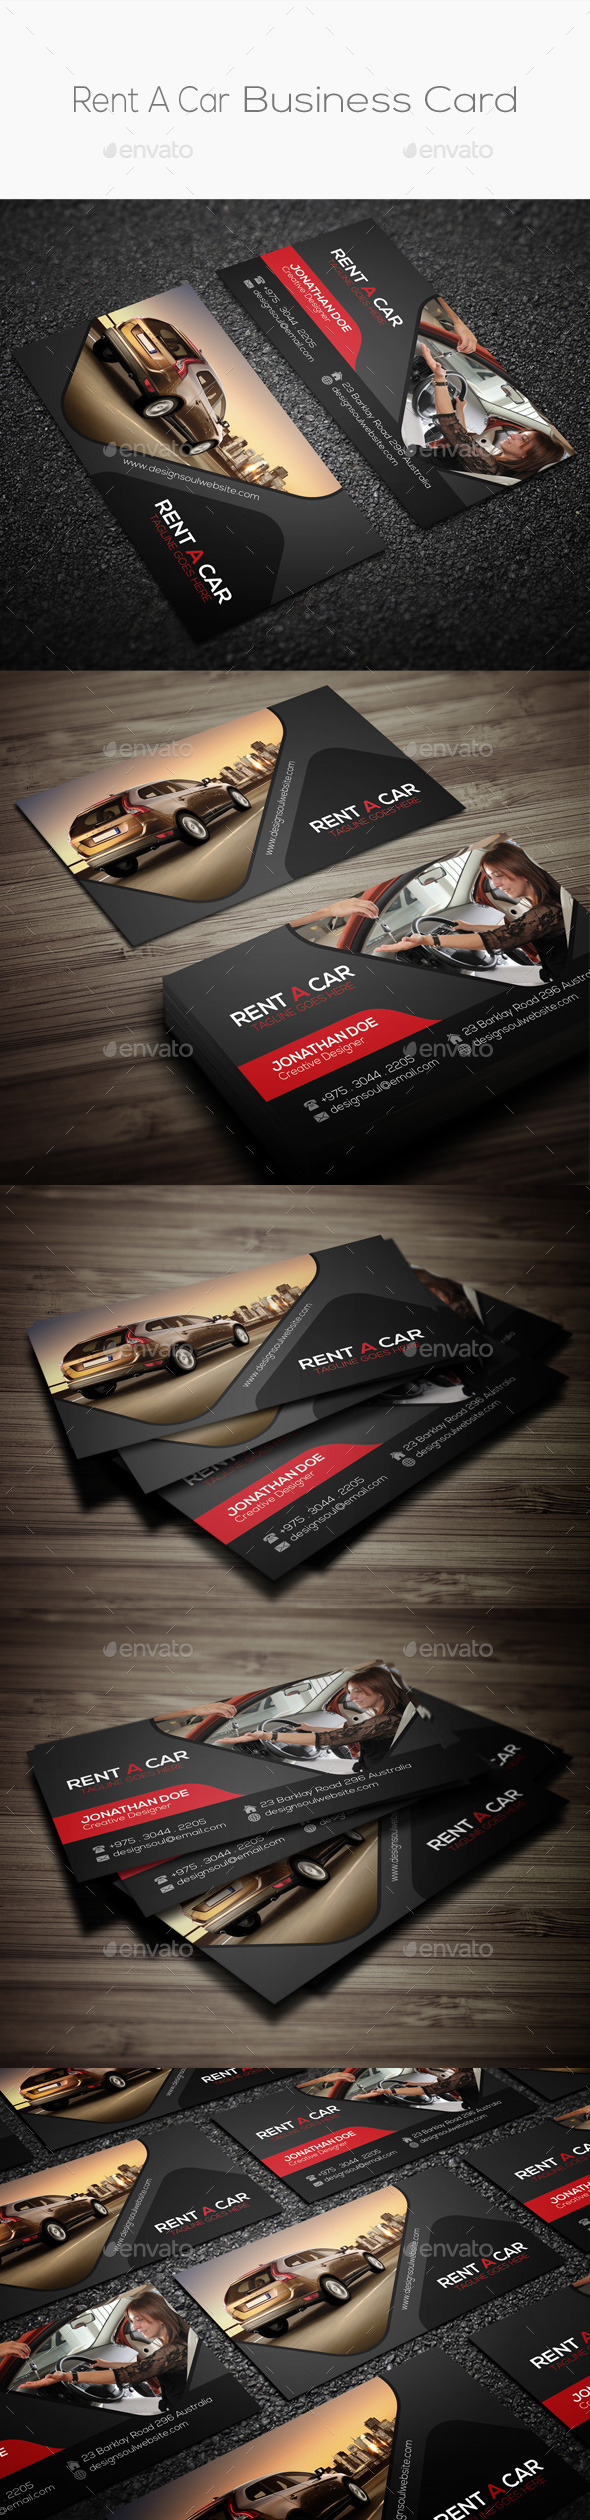 GraphicRiver Rent A Car Business Card 9013065